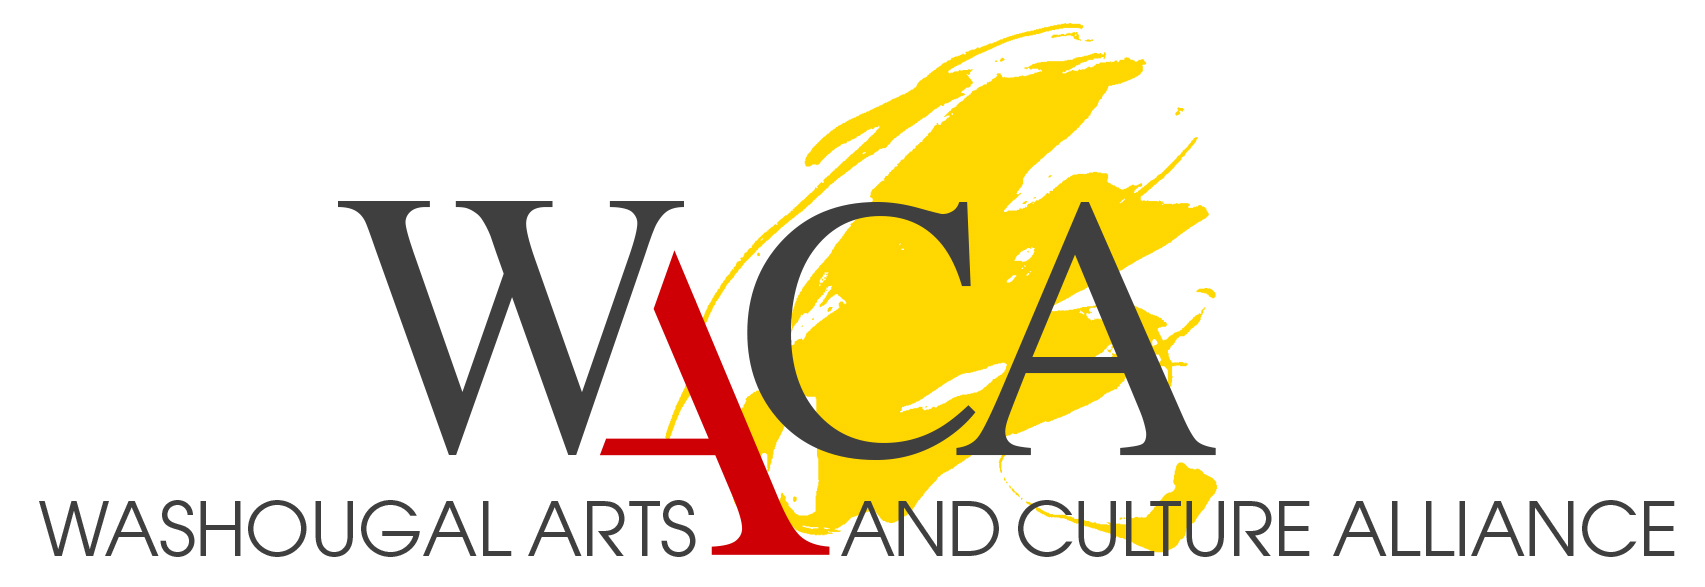 Washougal Arts adn Culture Alliance logo with yellow paint behind letters